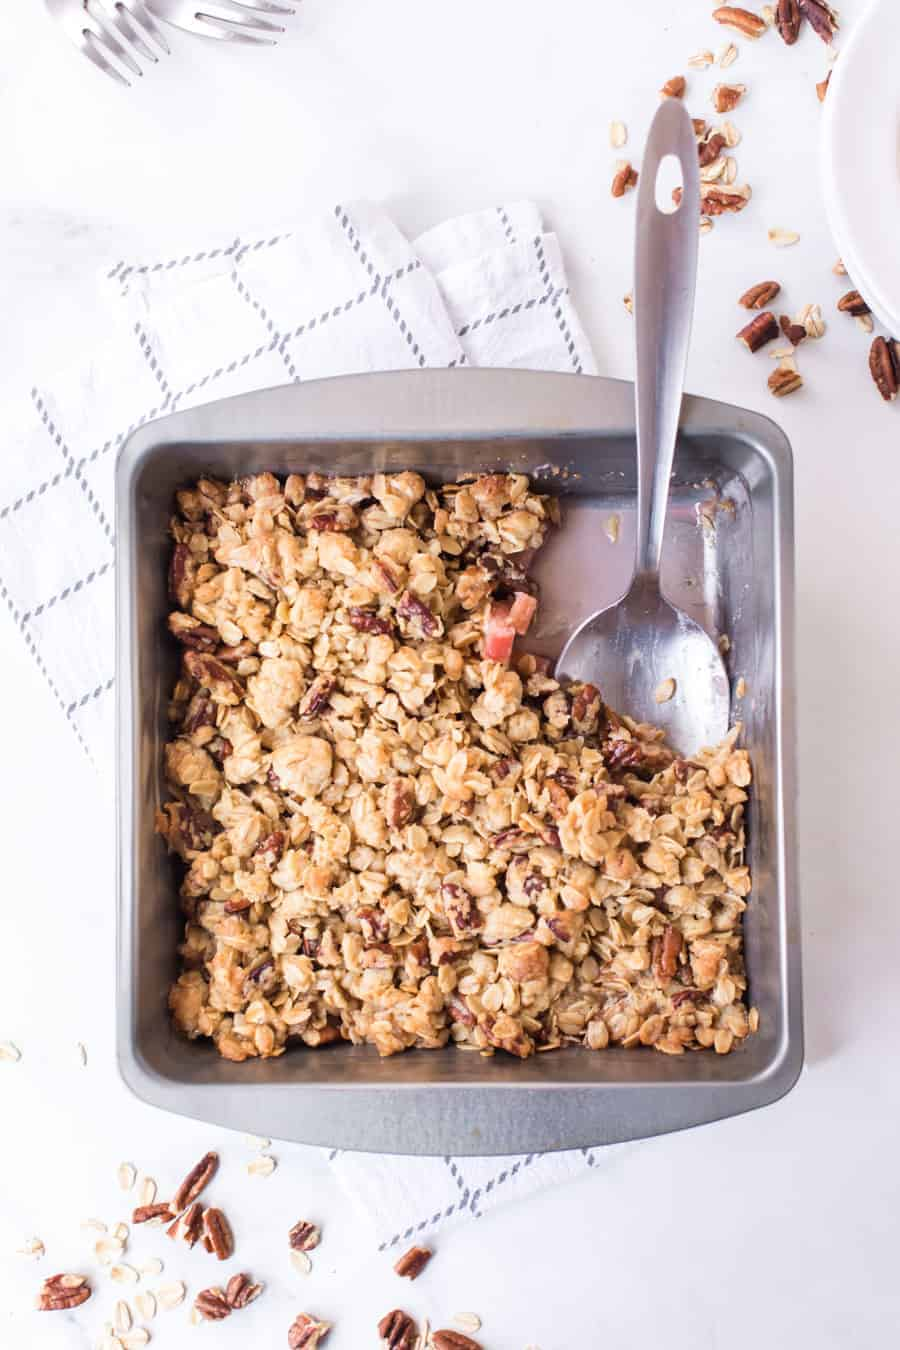 rhubarb crisp in baking pan with serving spoon on white towel and white countertop with pecans